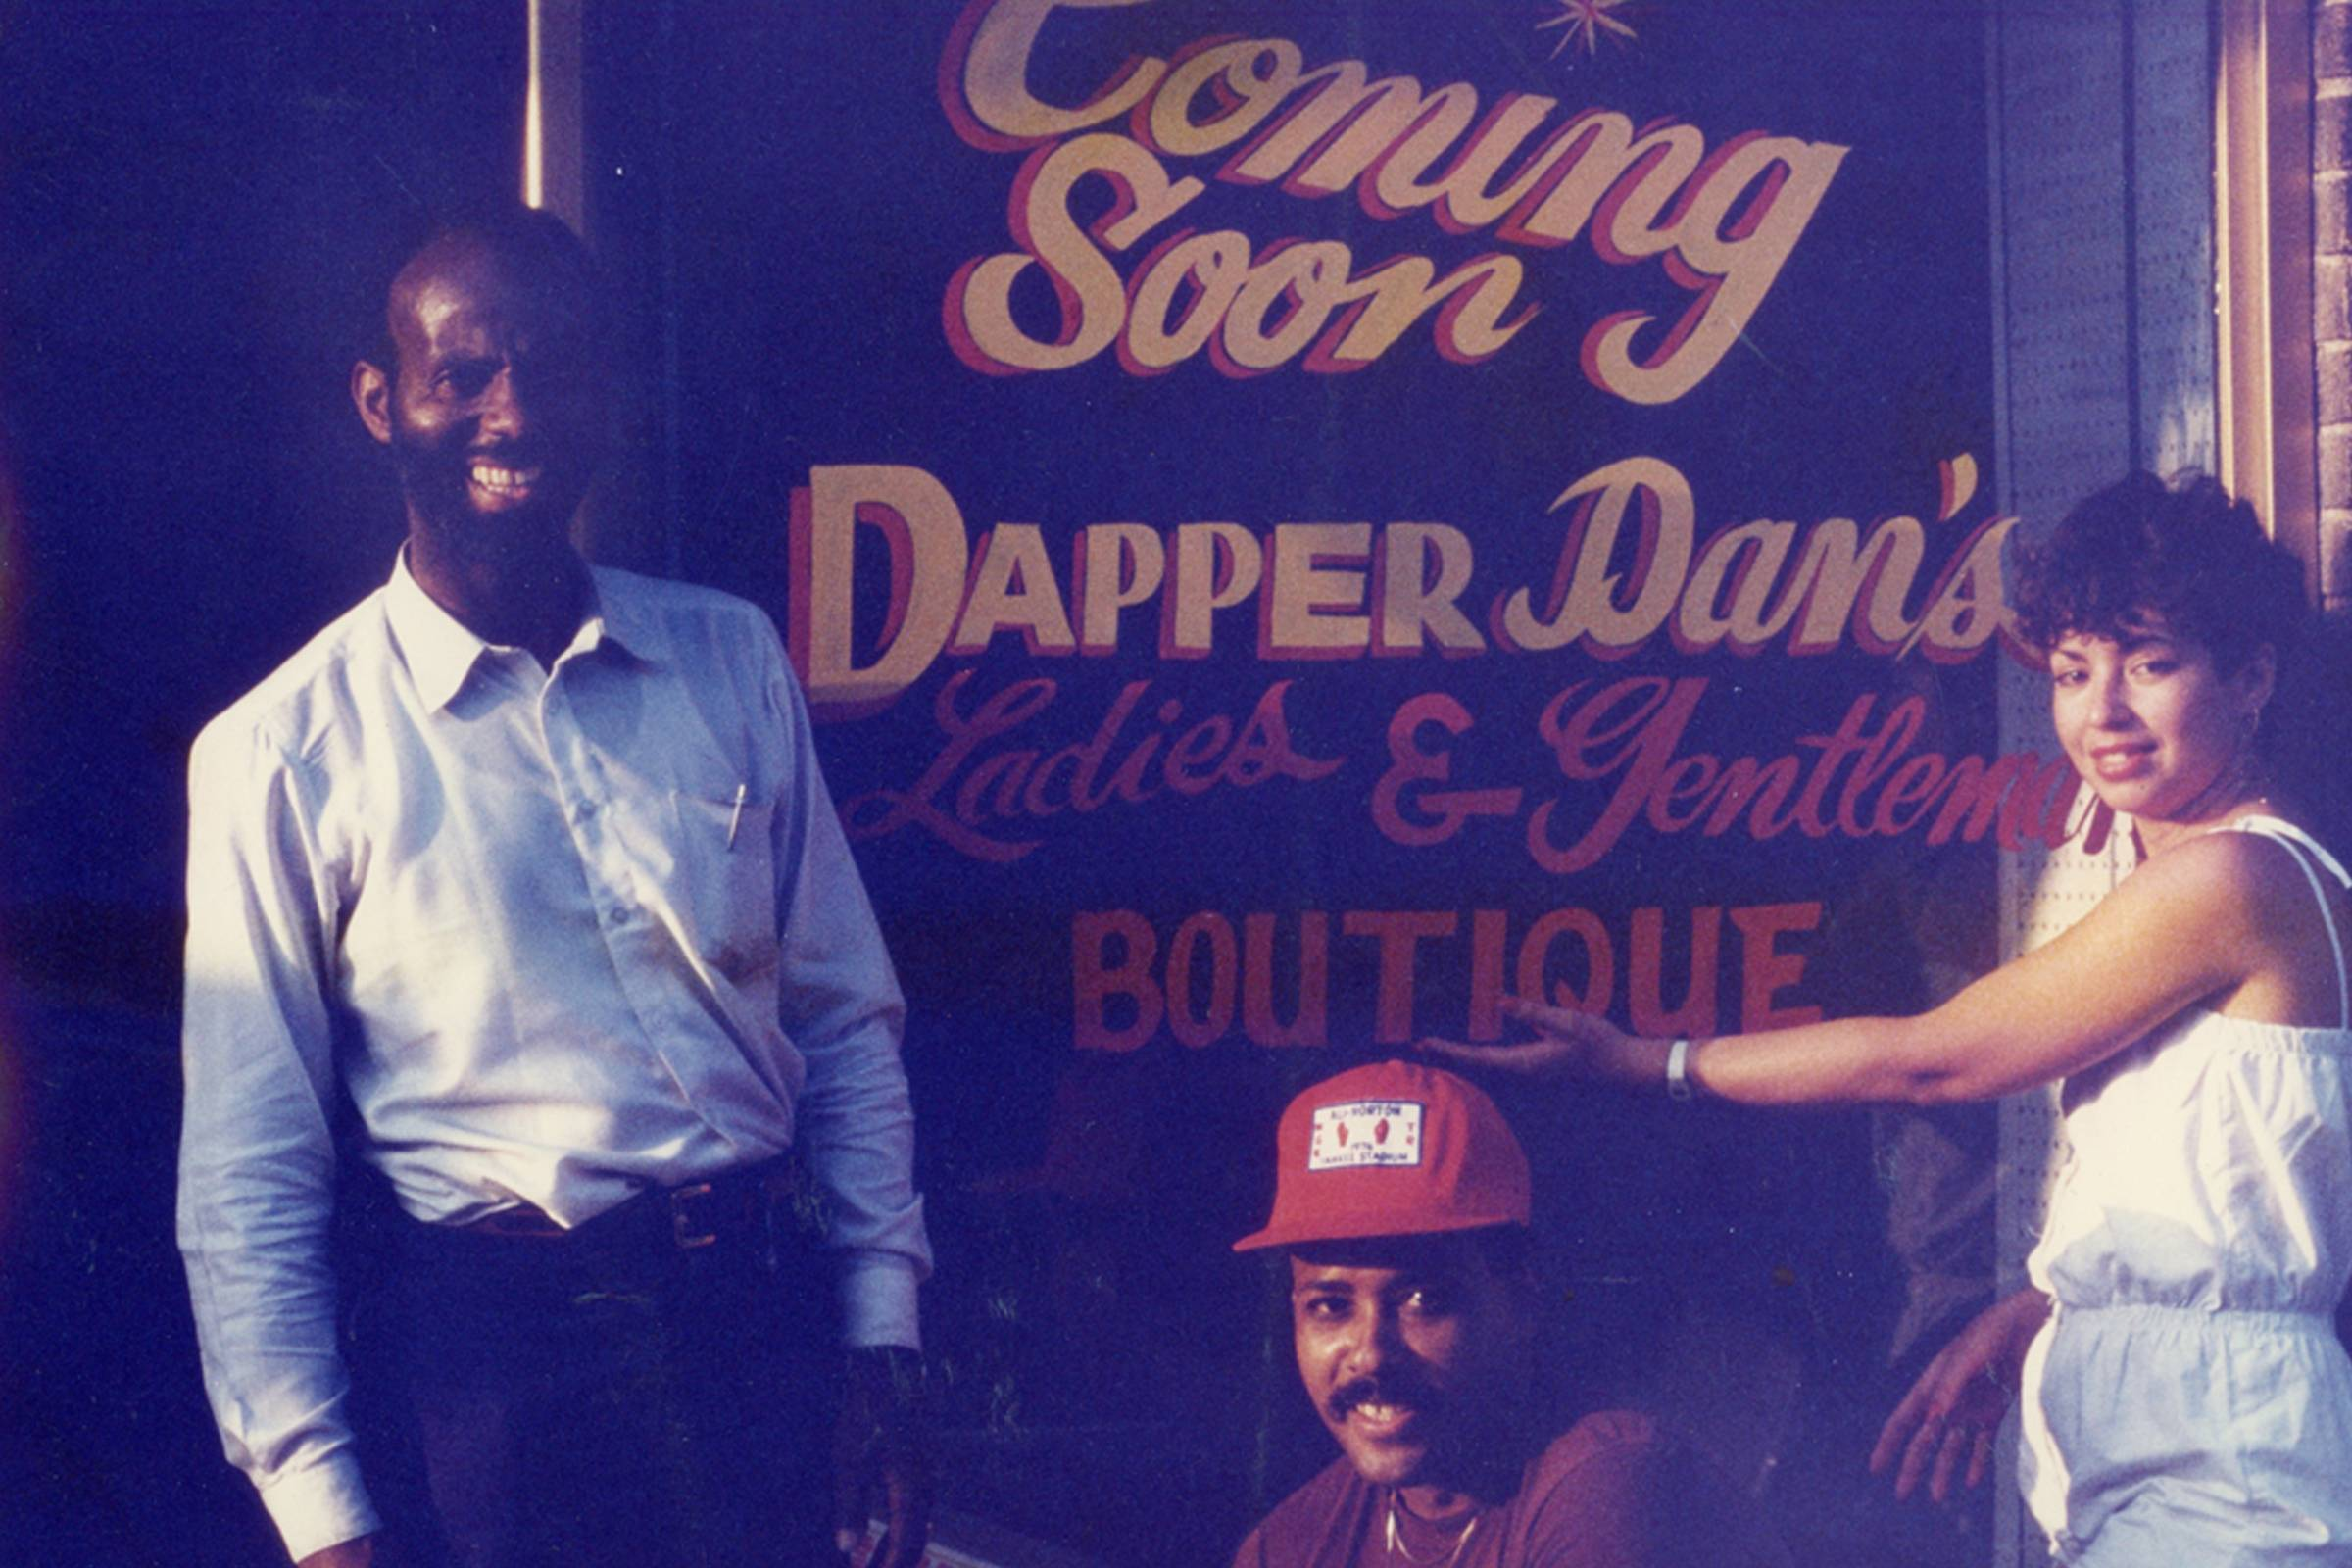 Dapper Dan outside of his Harlem boutique in 1983